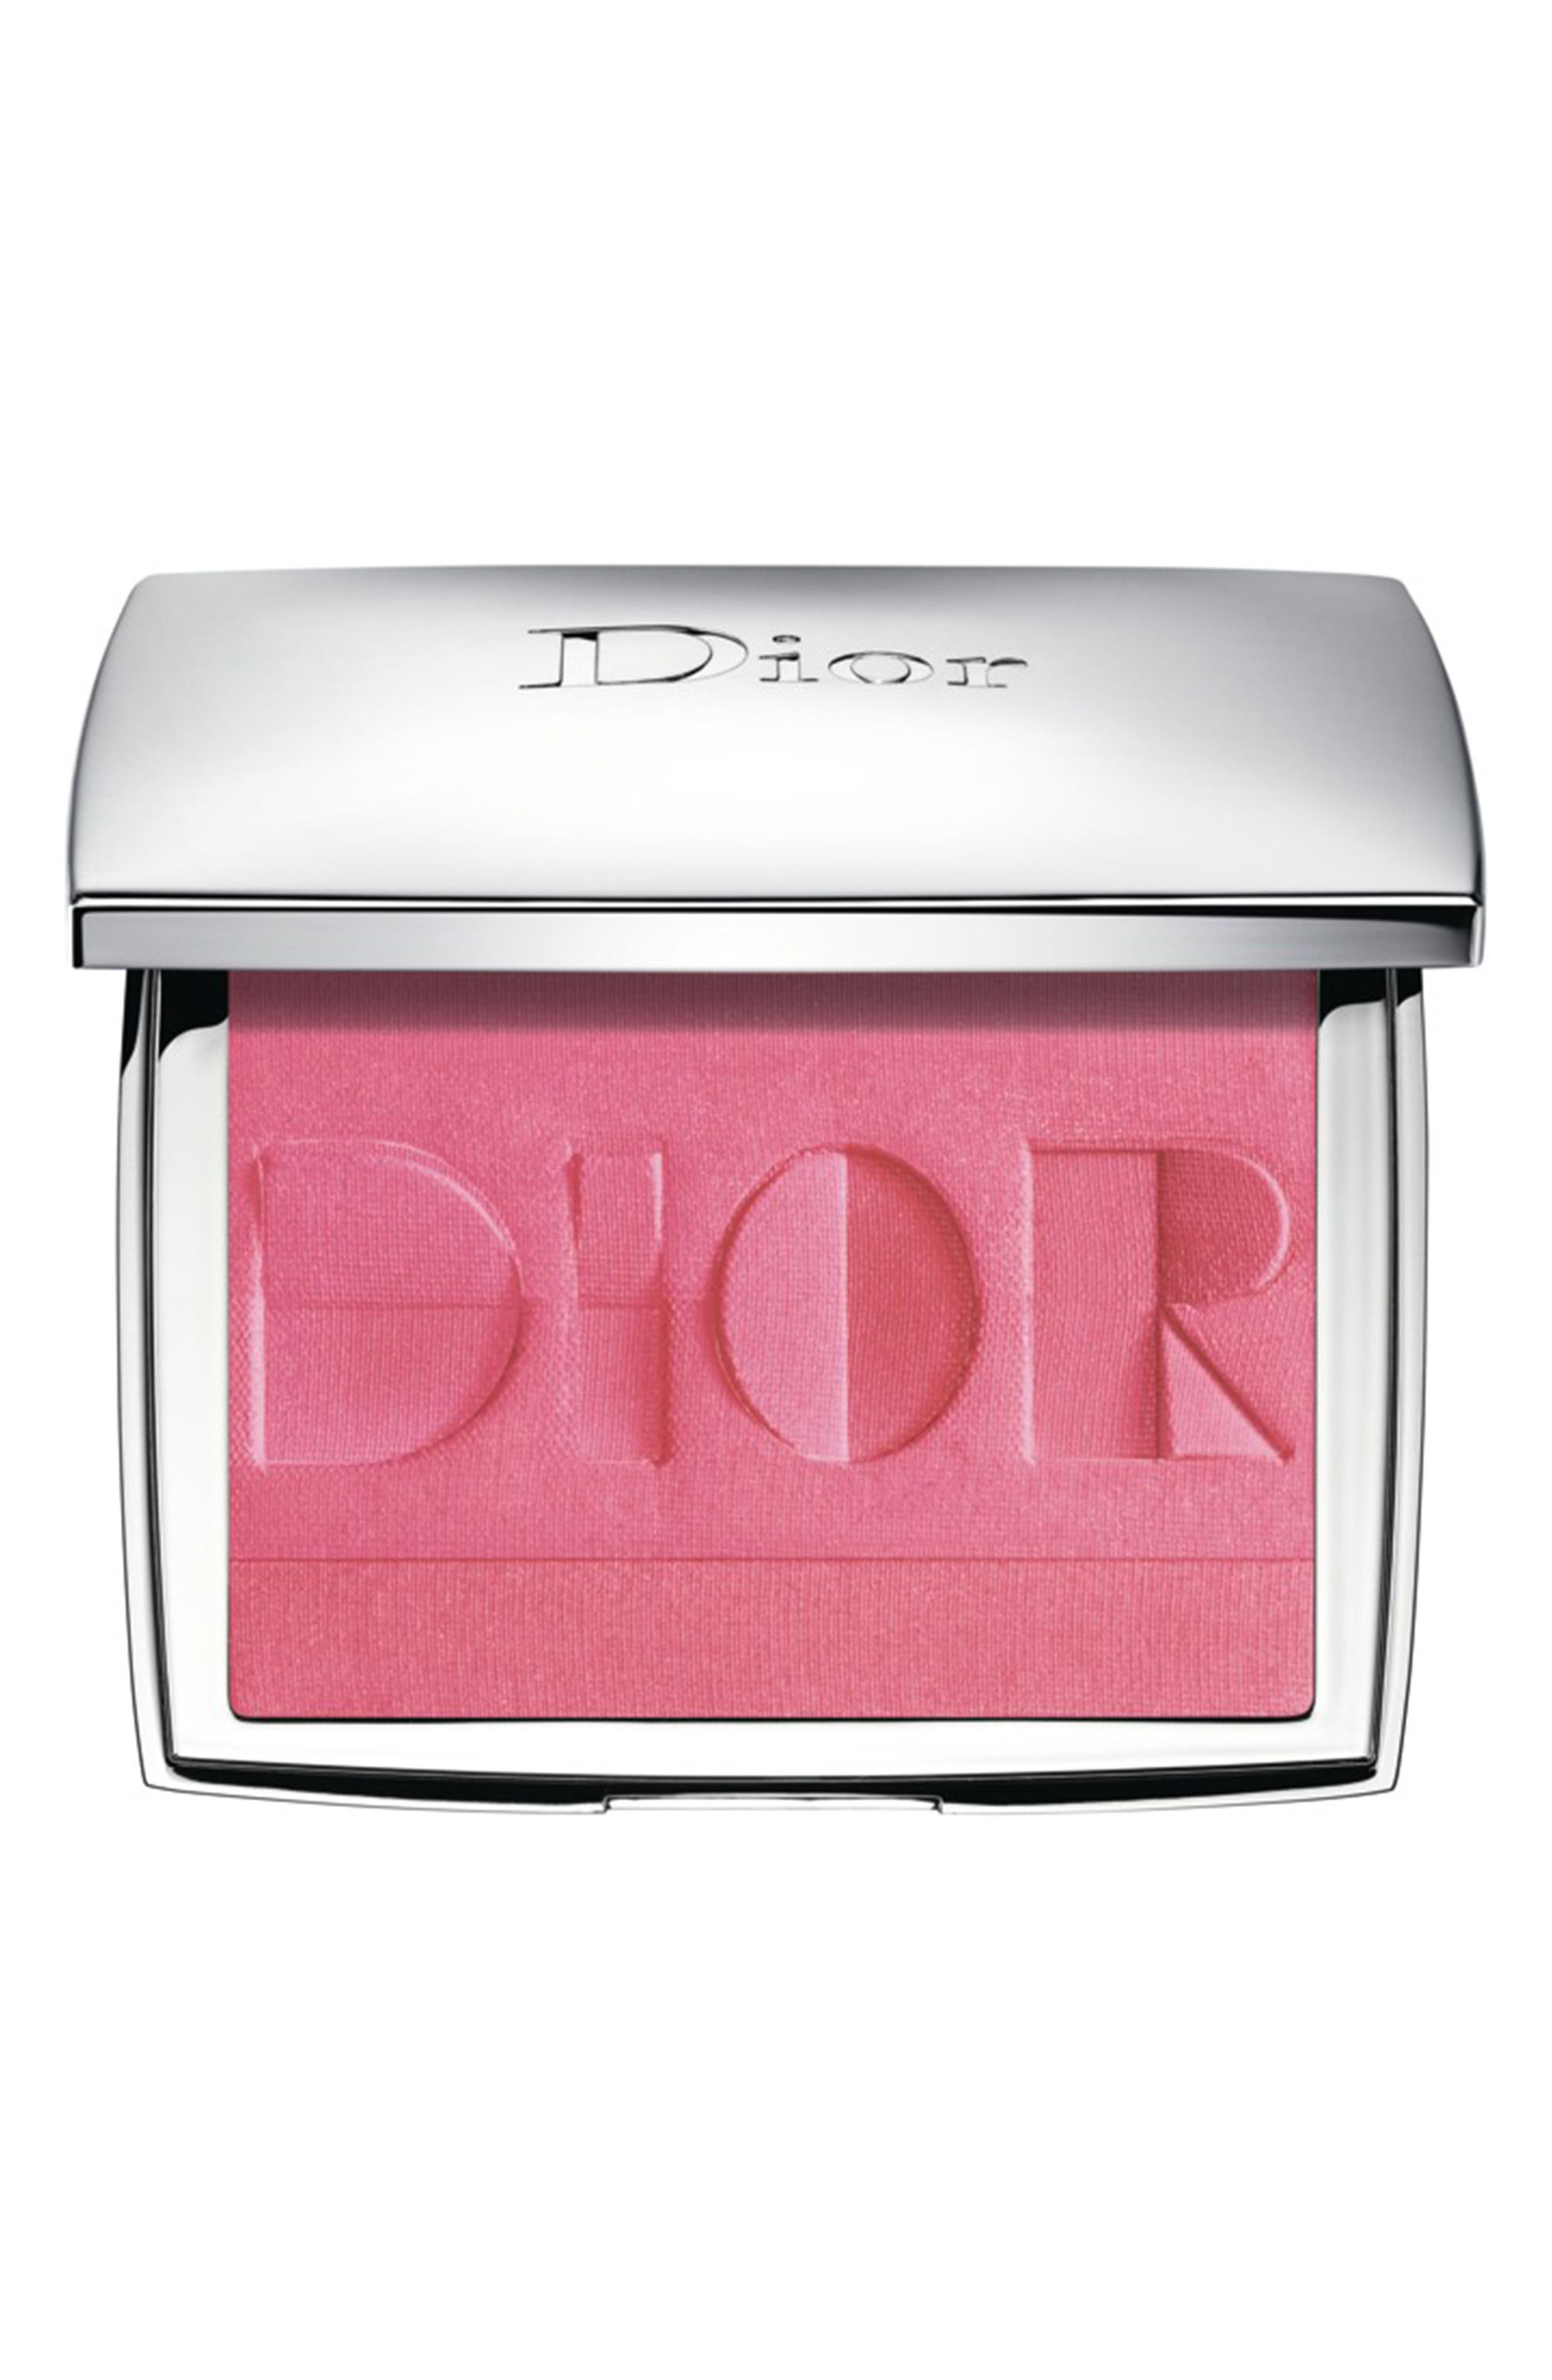 Dior Origami Blush (Nordstrom Exclusive)